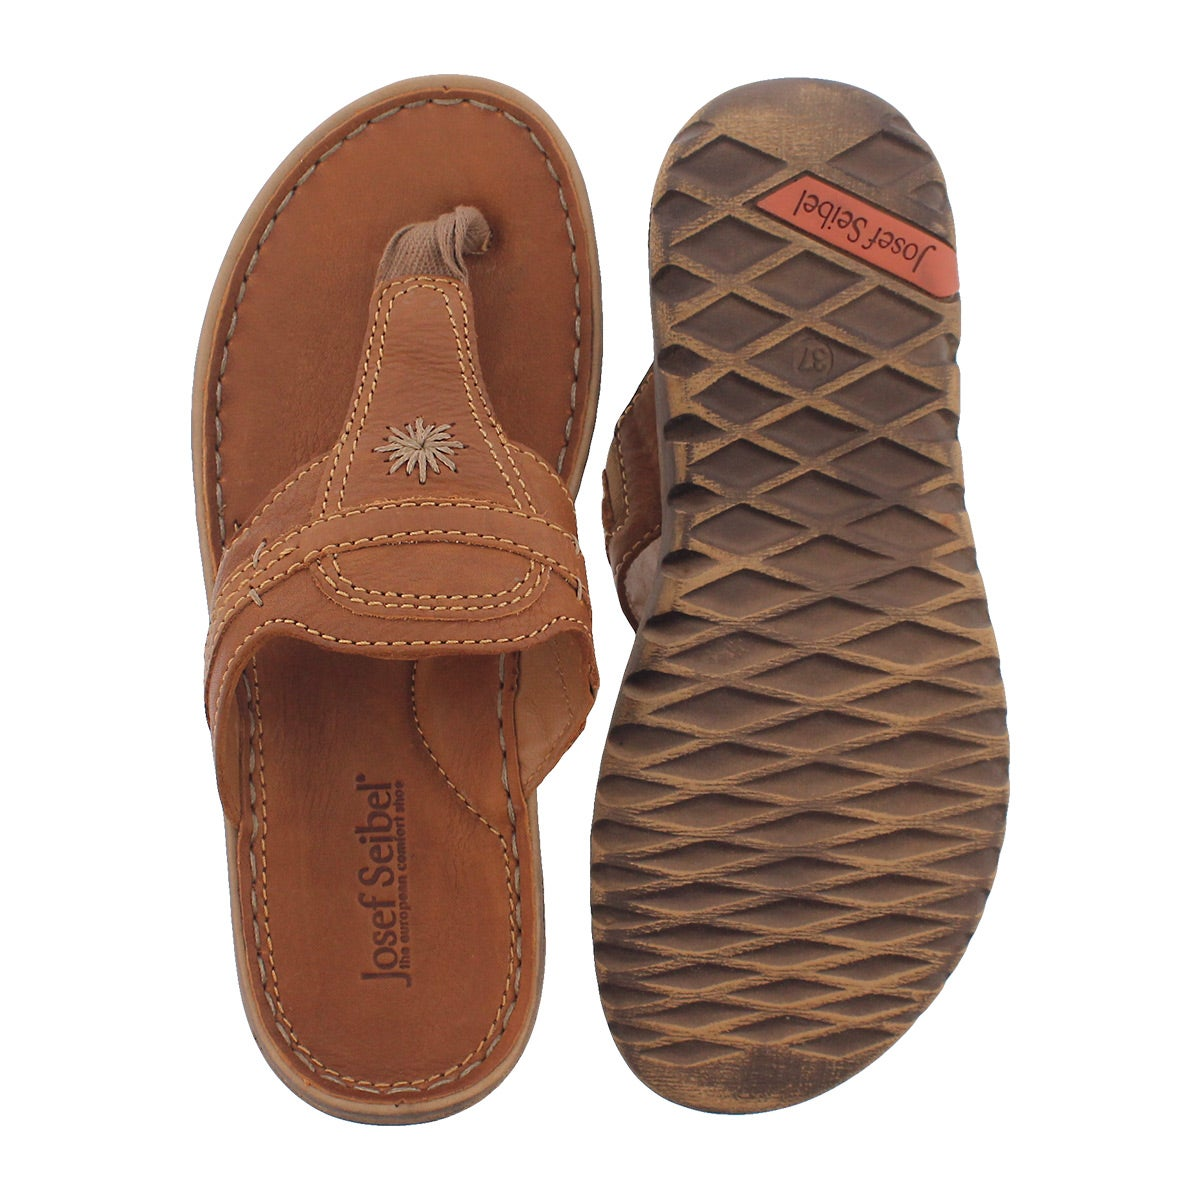 Lds Lucia 09 castagne casual thng sandal